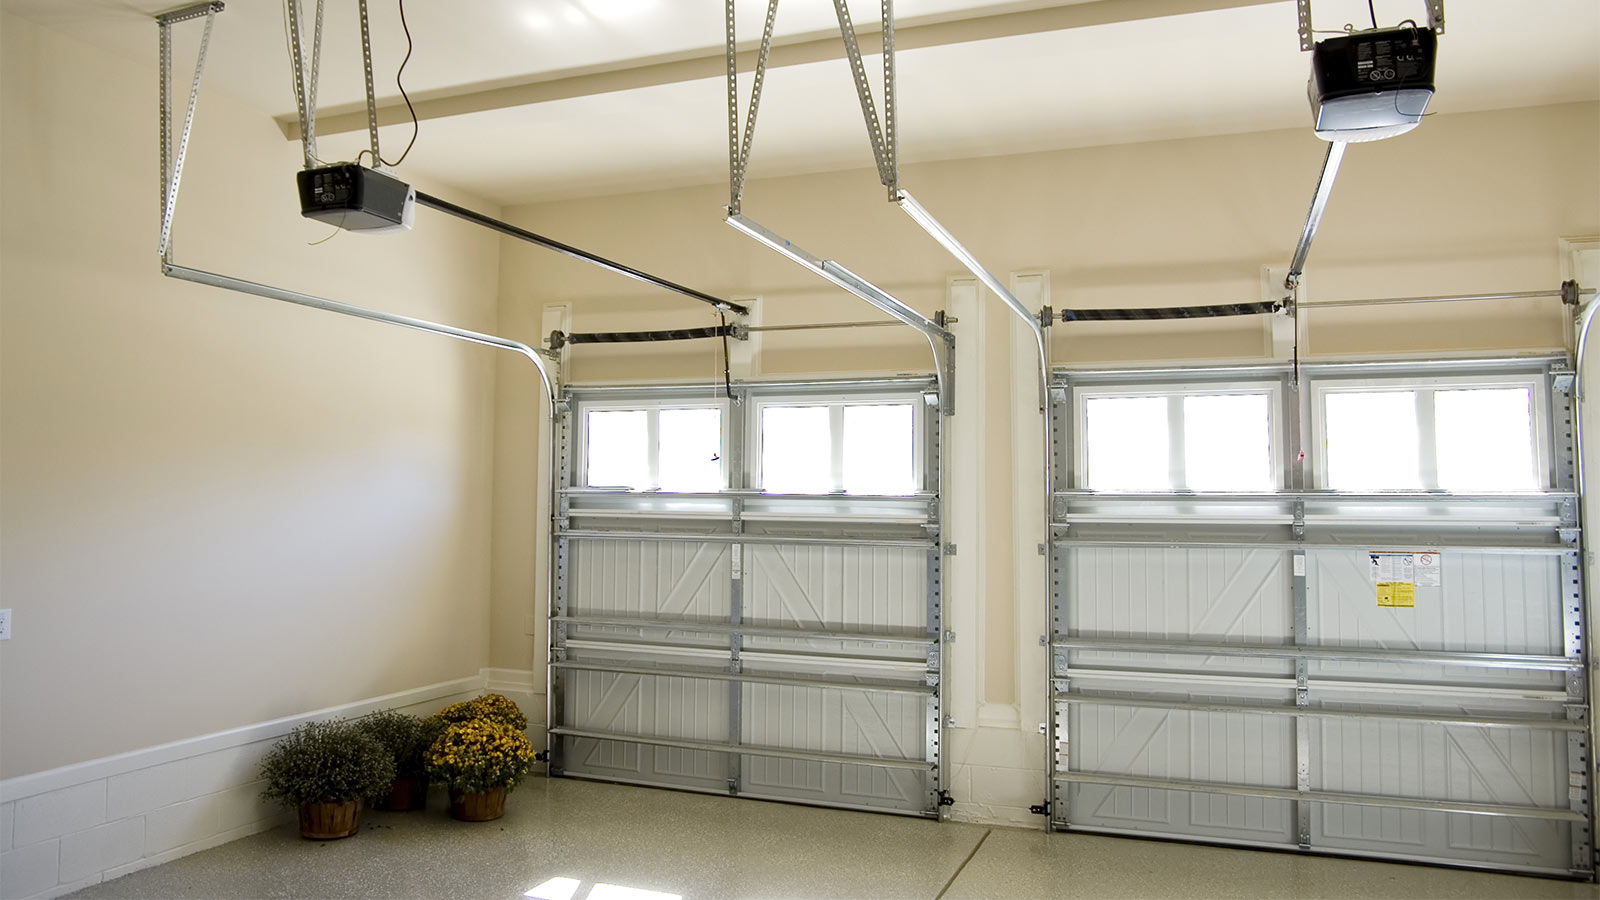 Sectional Garage Doors from Steel Security Doors Woodford suppliers.